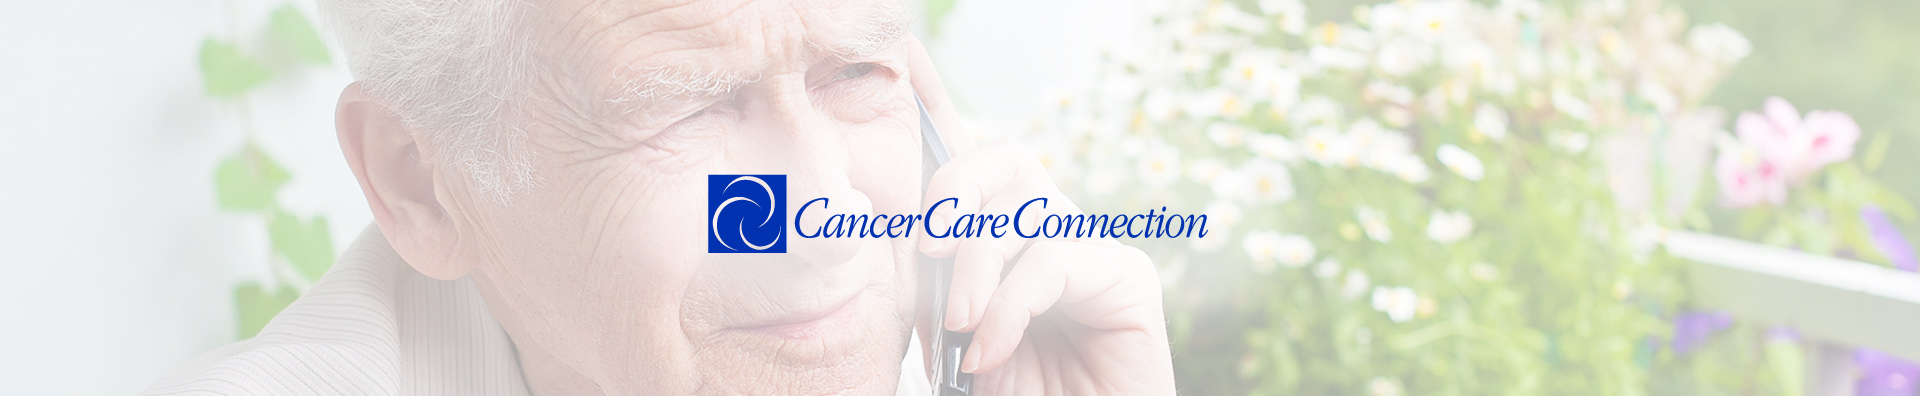 Cancer Care Connection